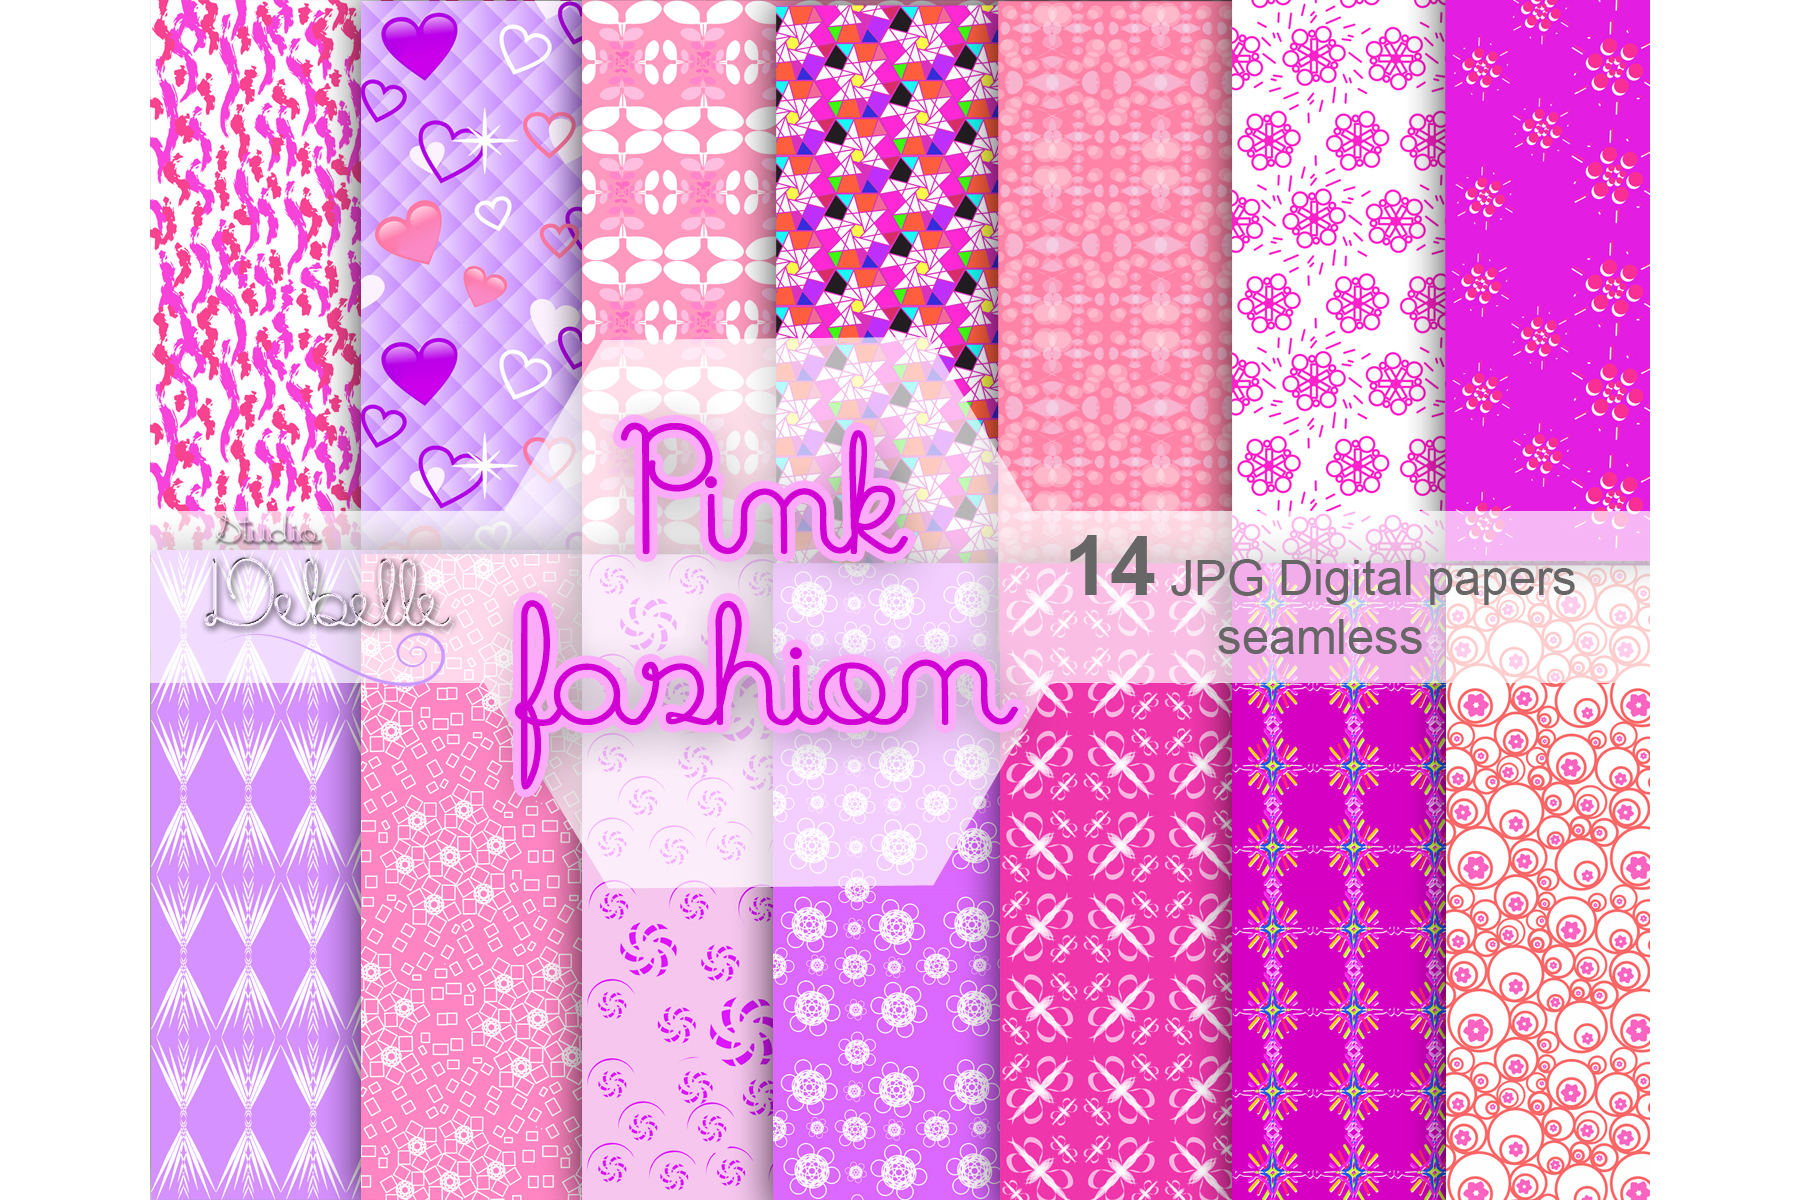 Fashion Pink digital paper seamless pattern example image 1